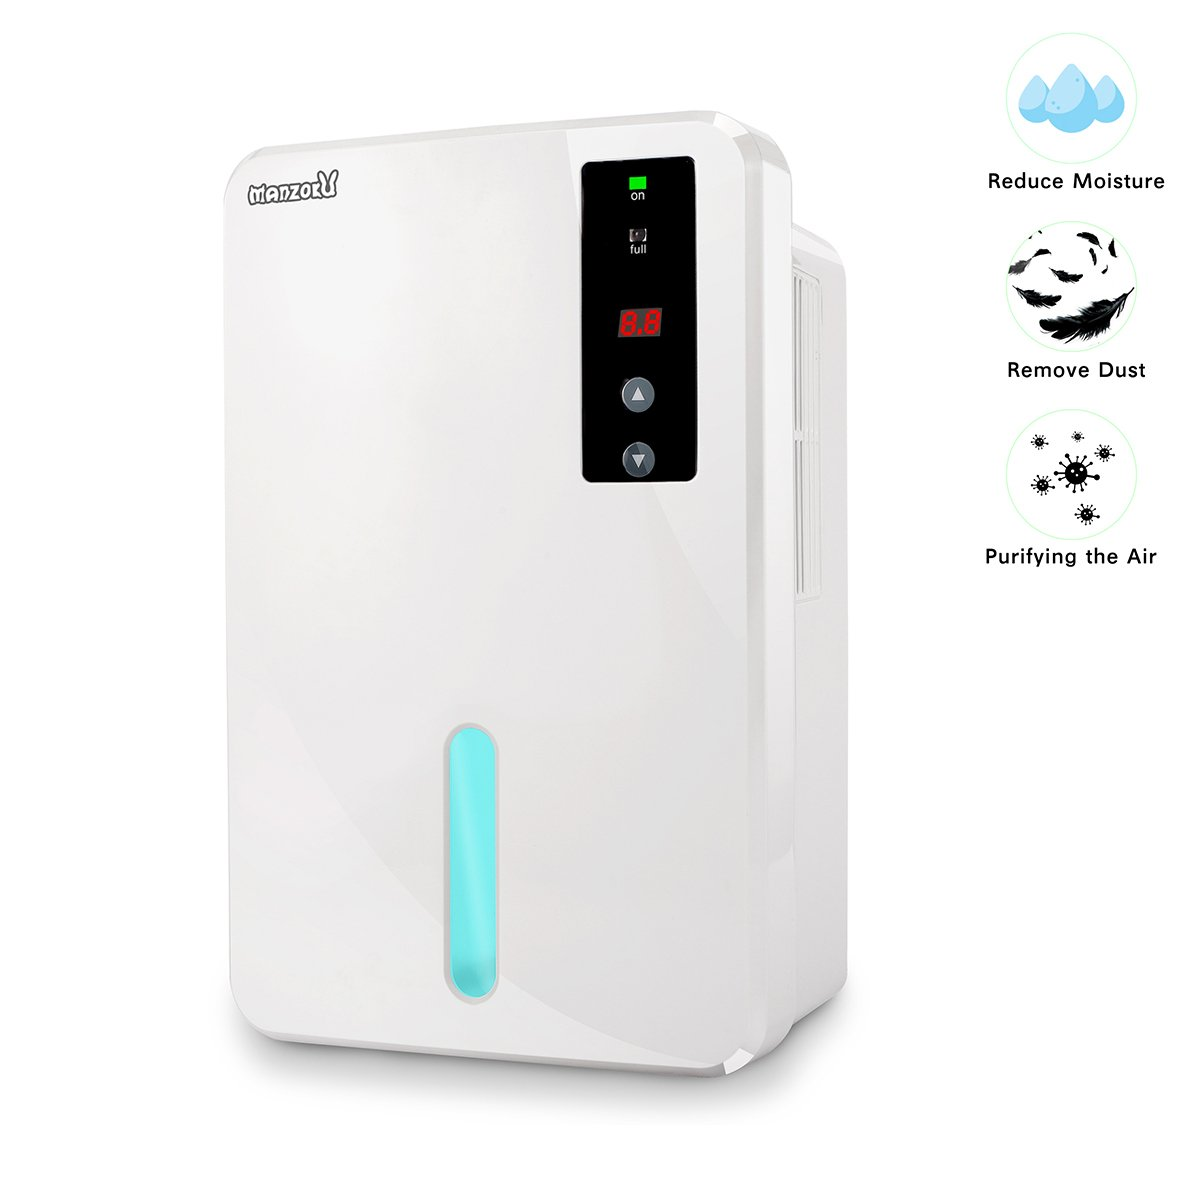 Dehumidifier Electric Mini Dehumidifiers for Home Basements Bathroom RV Closet 1800 Cubic Feet(215 sq ft) Large 1500ml Tank Portable Dehumidifier with Air Humidity Control to Remove Damp Mold Moisture